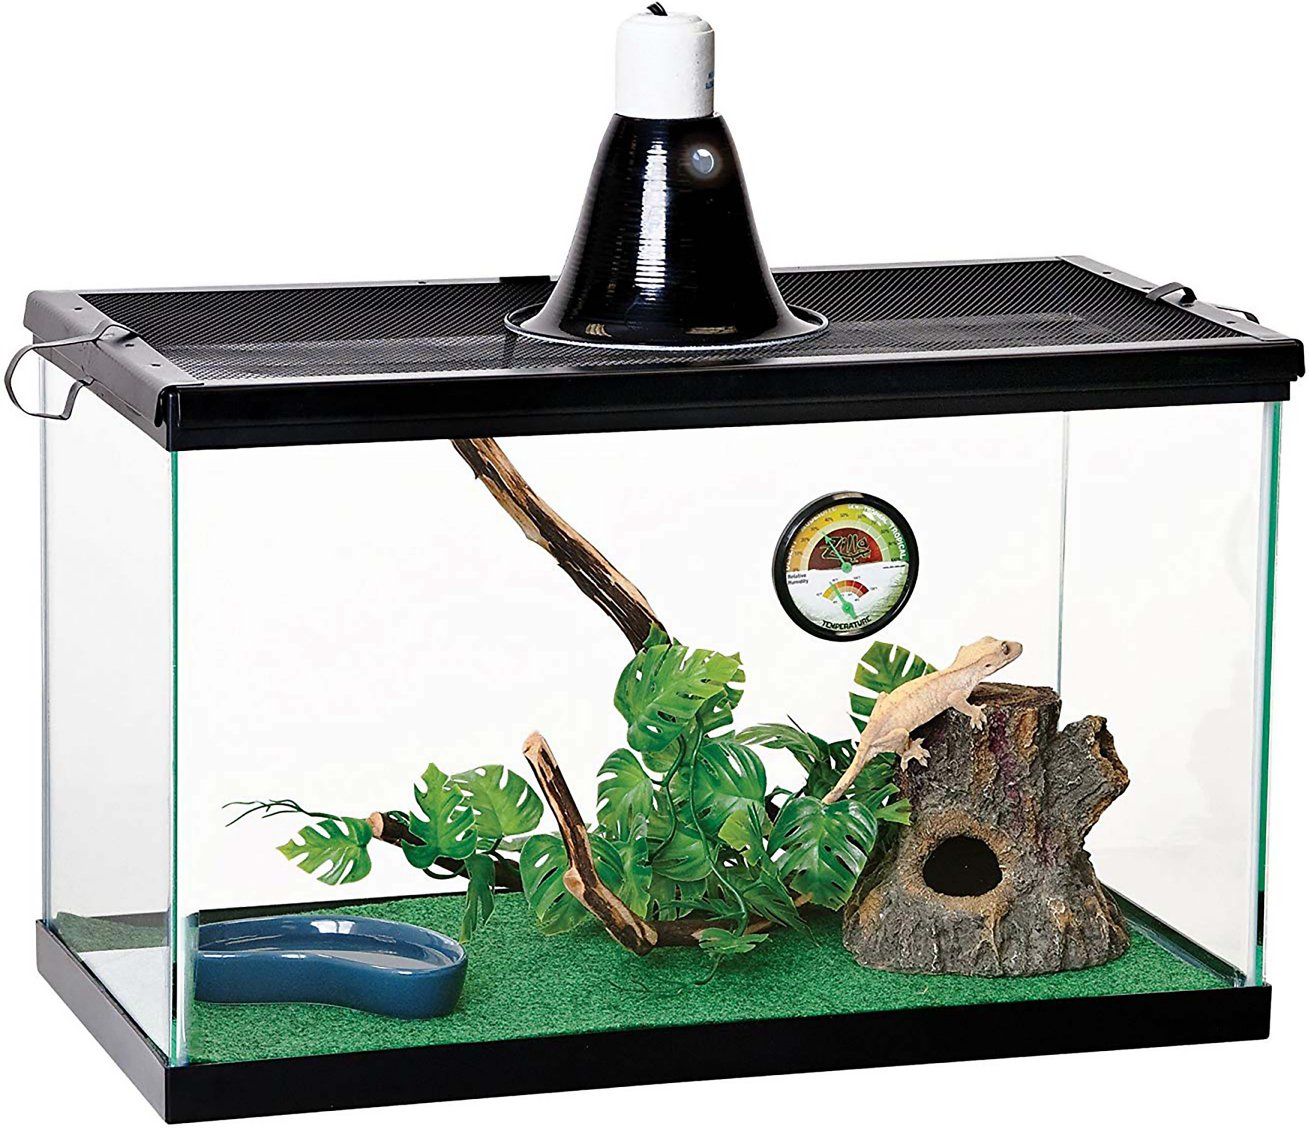 Zilla Tropical Reptile Terrarium Starter Kit With Light And Heat 10